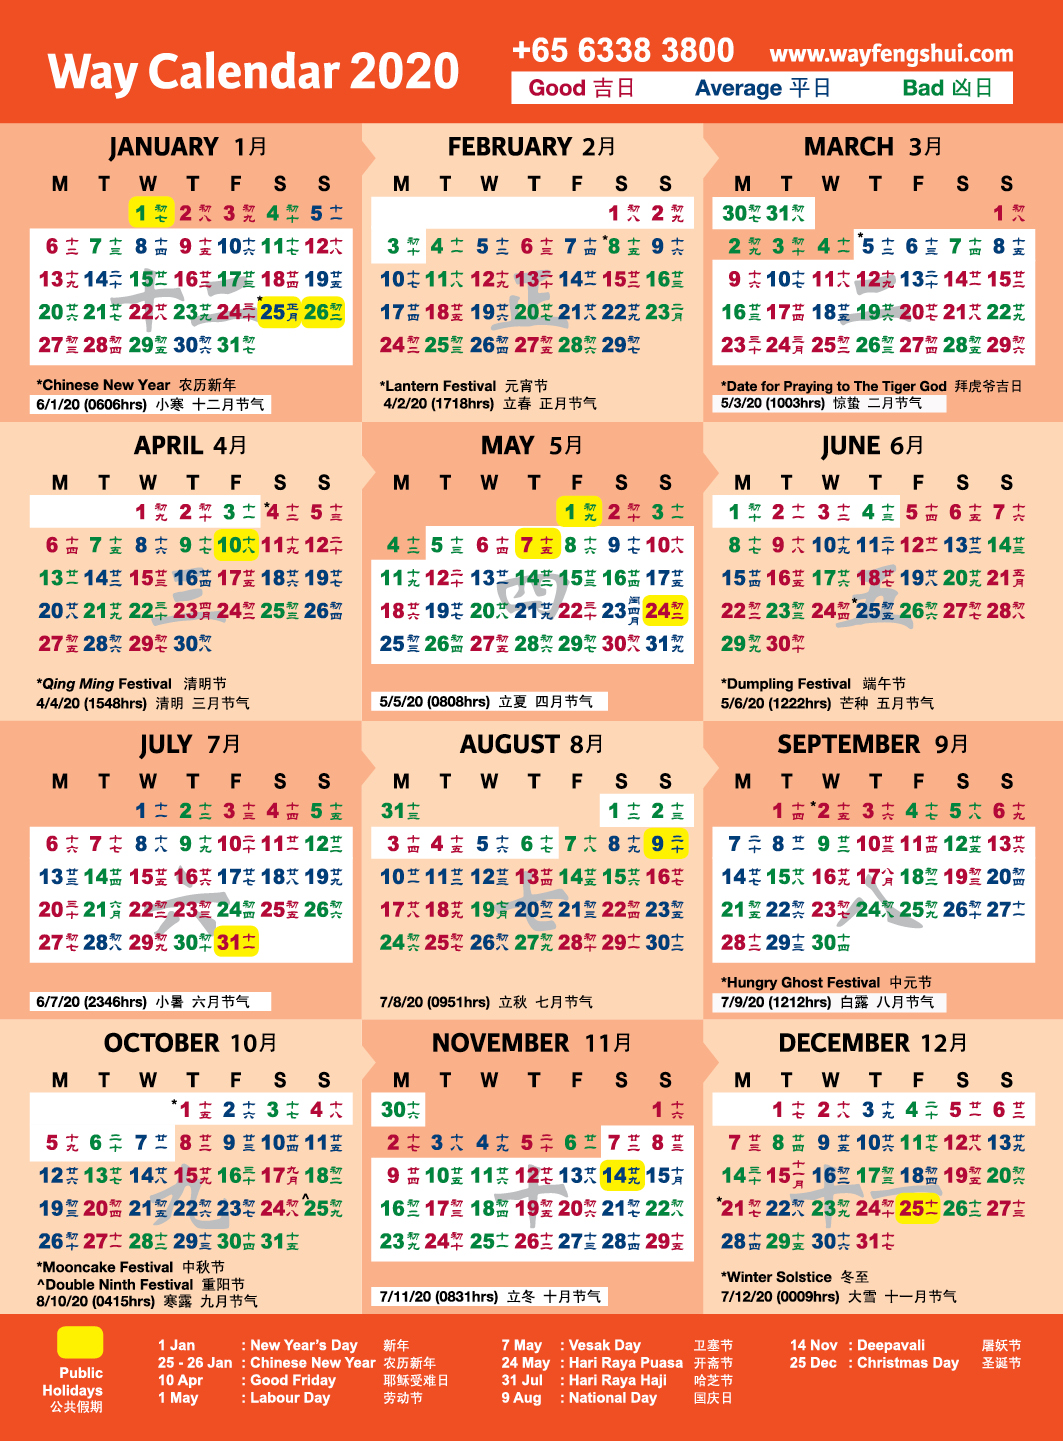 2020 Chinese New Year Date.2020 Way Calendar Feng Shui Master Singapore Chinese